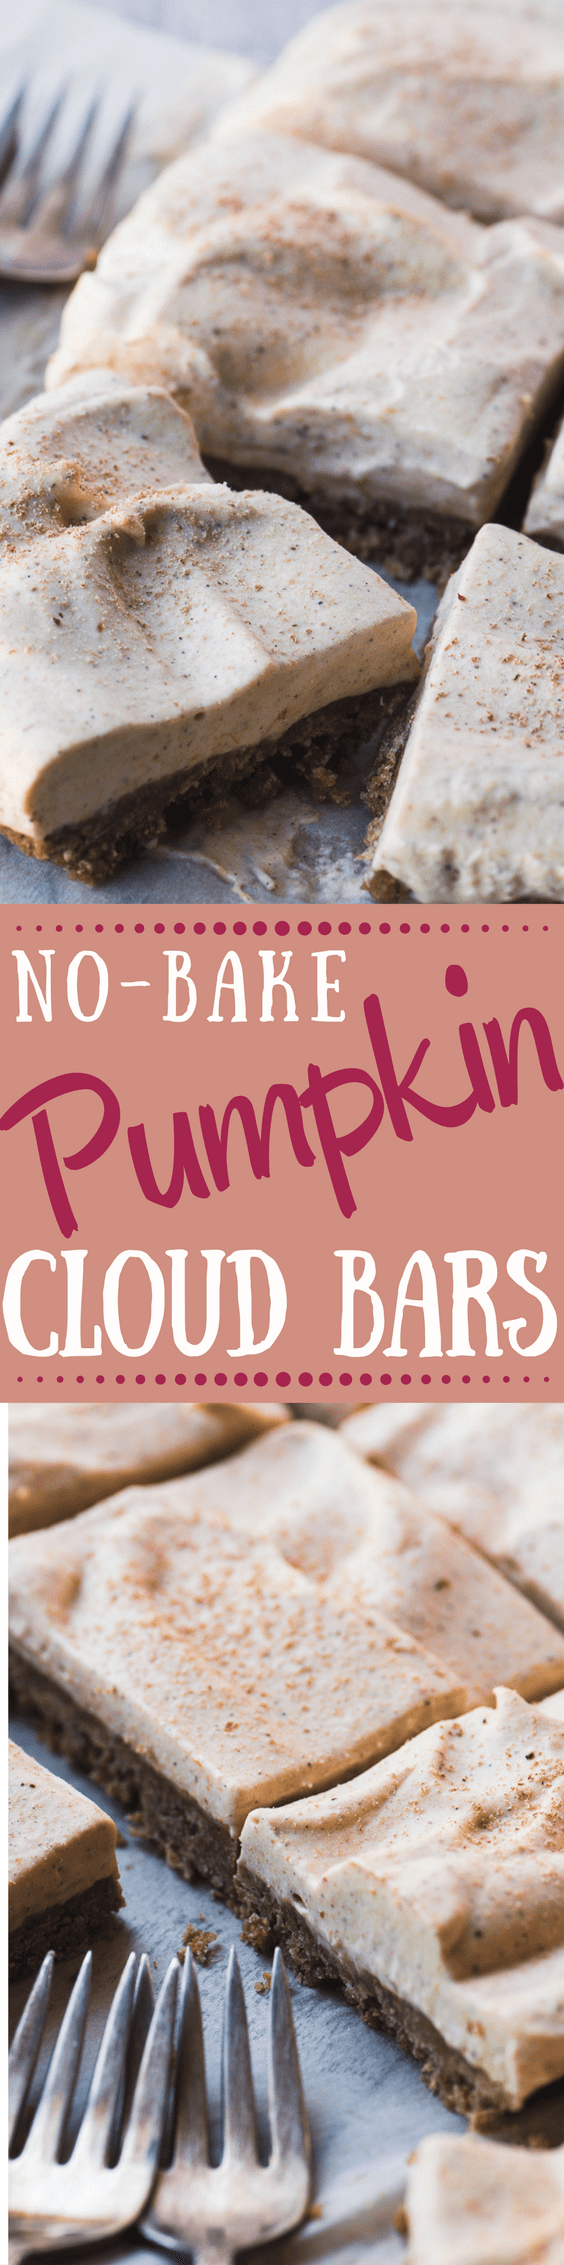 No bake pumpkin cloud bars the view from great island no bake pumpkin cloud bars this whisper light pumpkin dessert with its spiced graham crust aloadofball Gallery